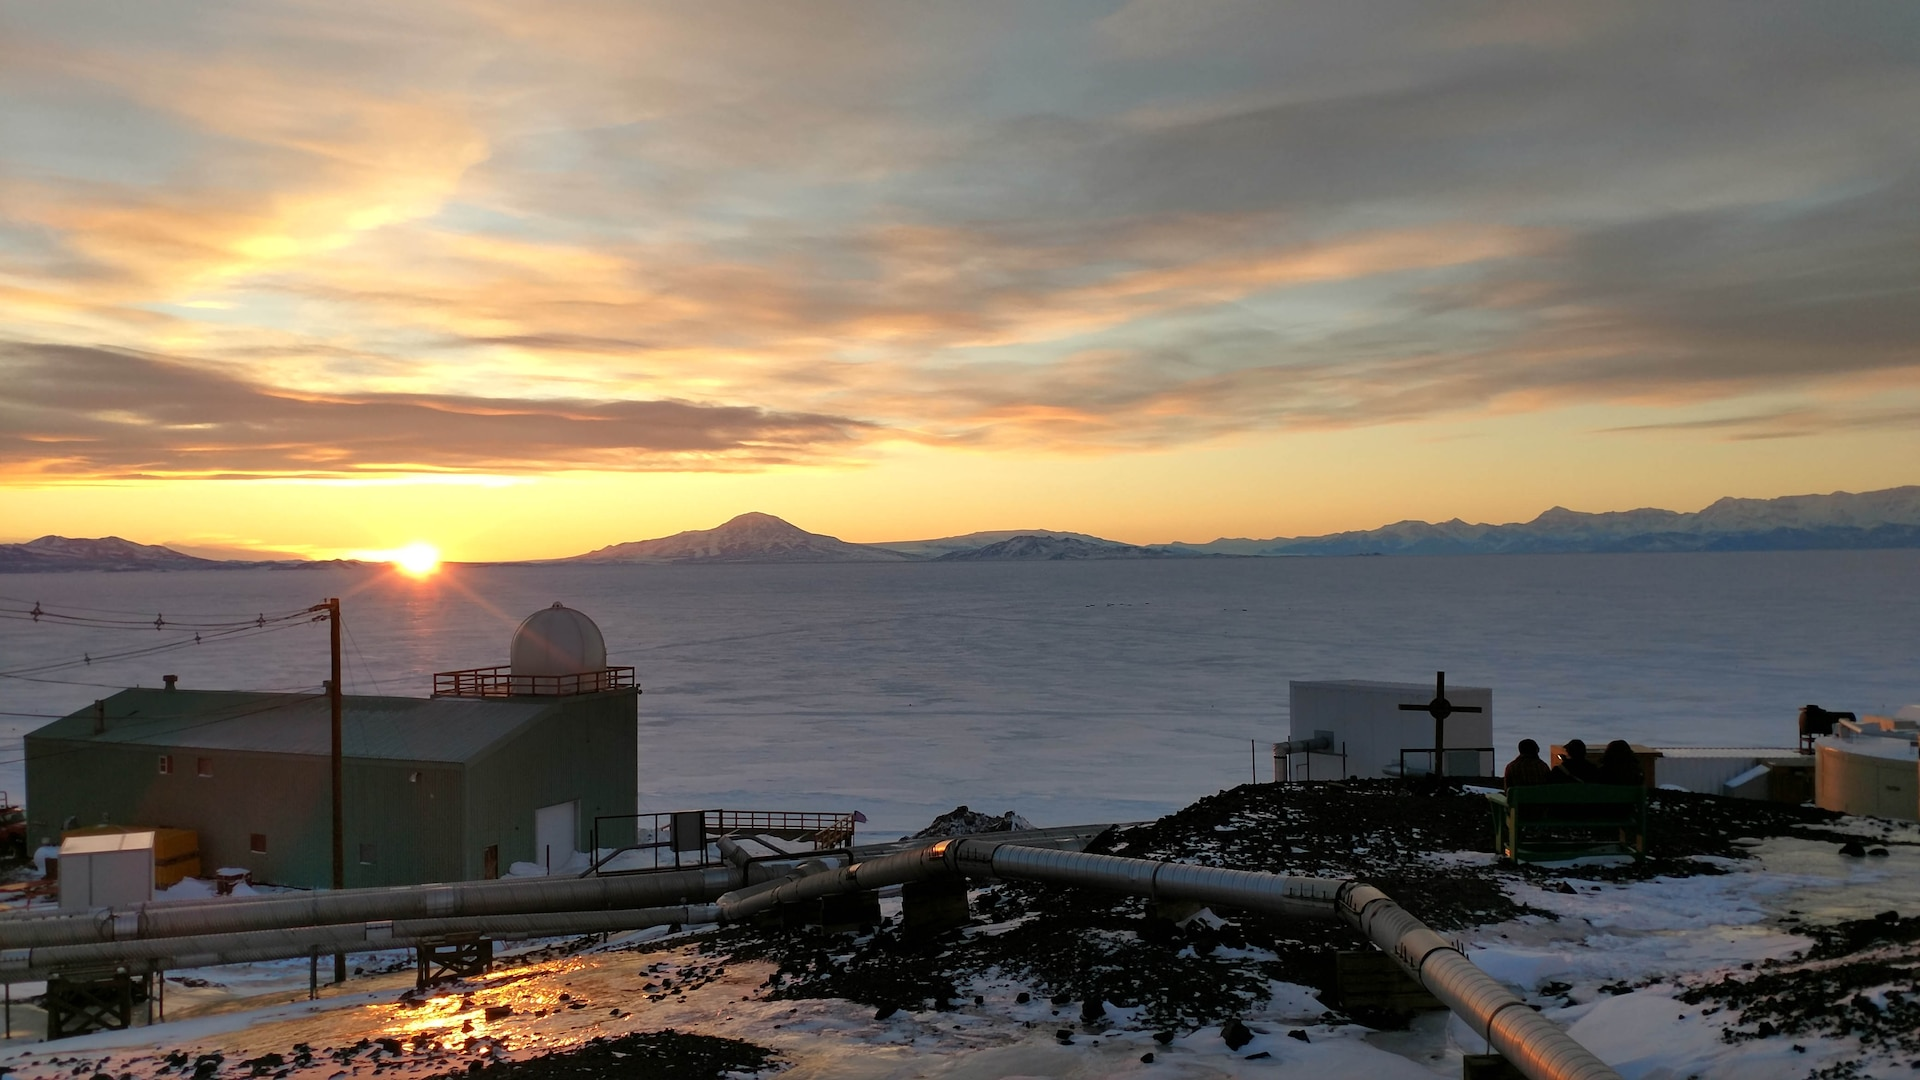 Senior Airman Richard Westra, a geophysical maintenance supervisor with the Air Force Technical Applications Center, Patrick AFB, Fla., snaps a photo of the last sunset of the year at McMurdo Station, Antarctica.  Westra was one of six Airmen from the nuclear treaty monitoring center who traveled to Earth's southernmost point to conduct annual maintenance on AFTAC's seismic equipment.  (U.S. Air Force photo by Senior Airman Richard Westra)